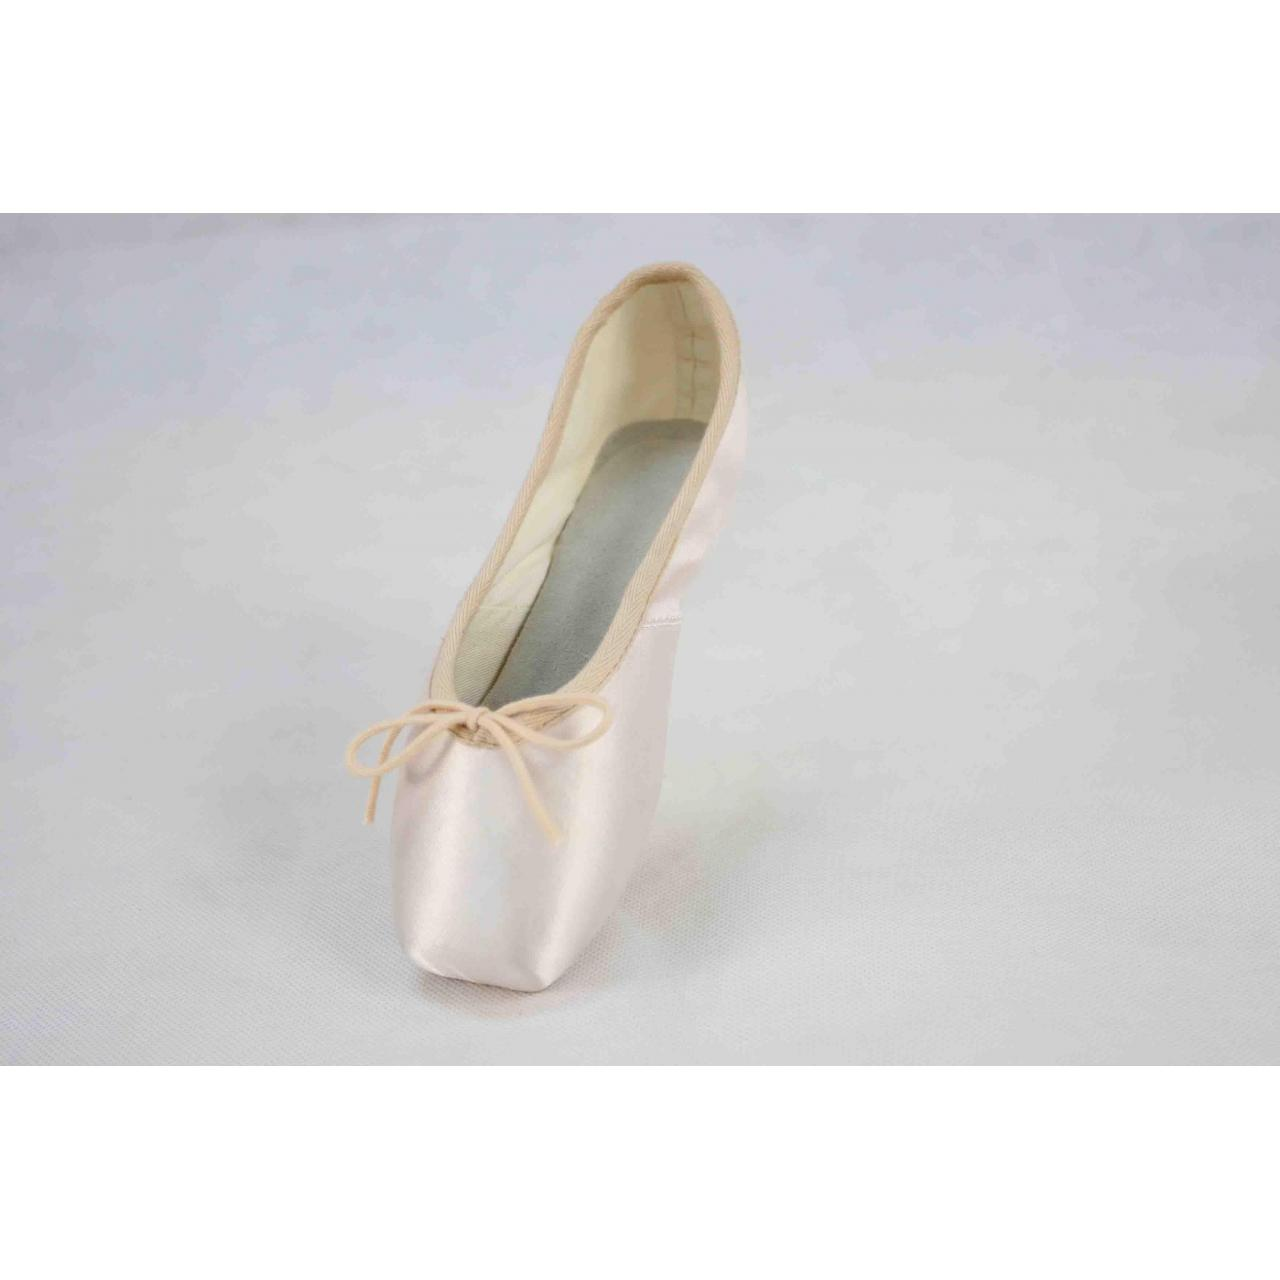 China Light Industrial Products pointeballetshoe 2231524216 wholesale